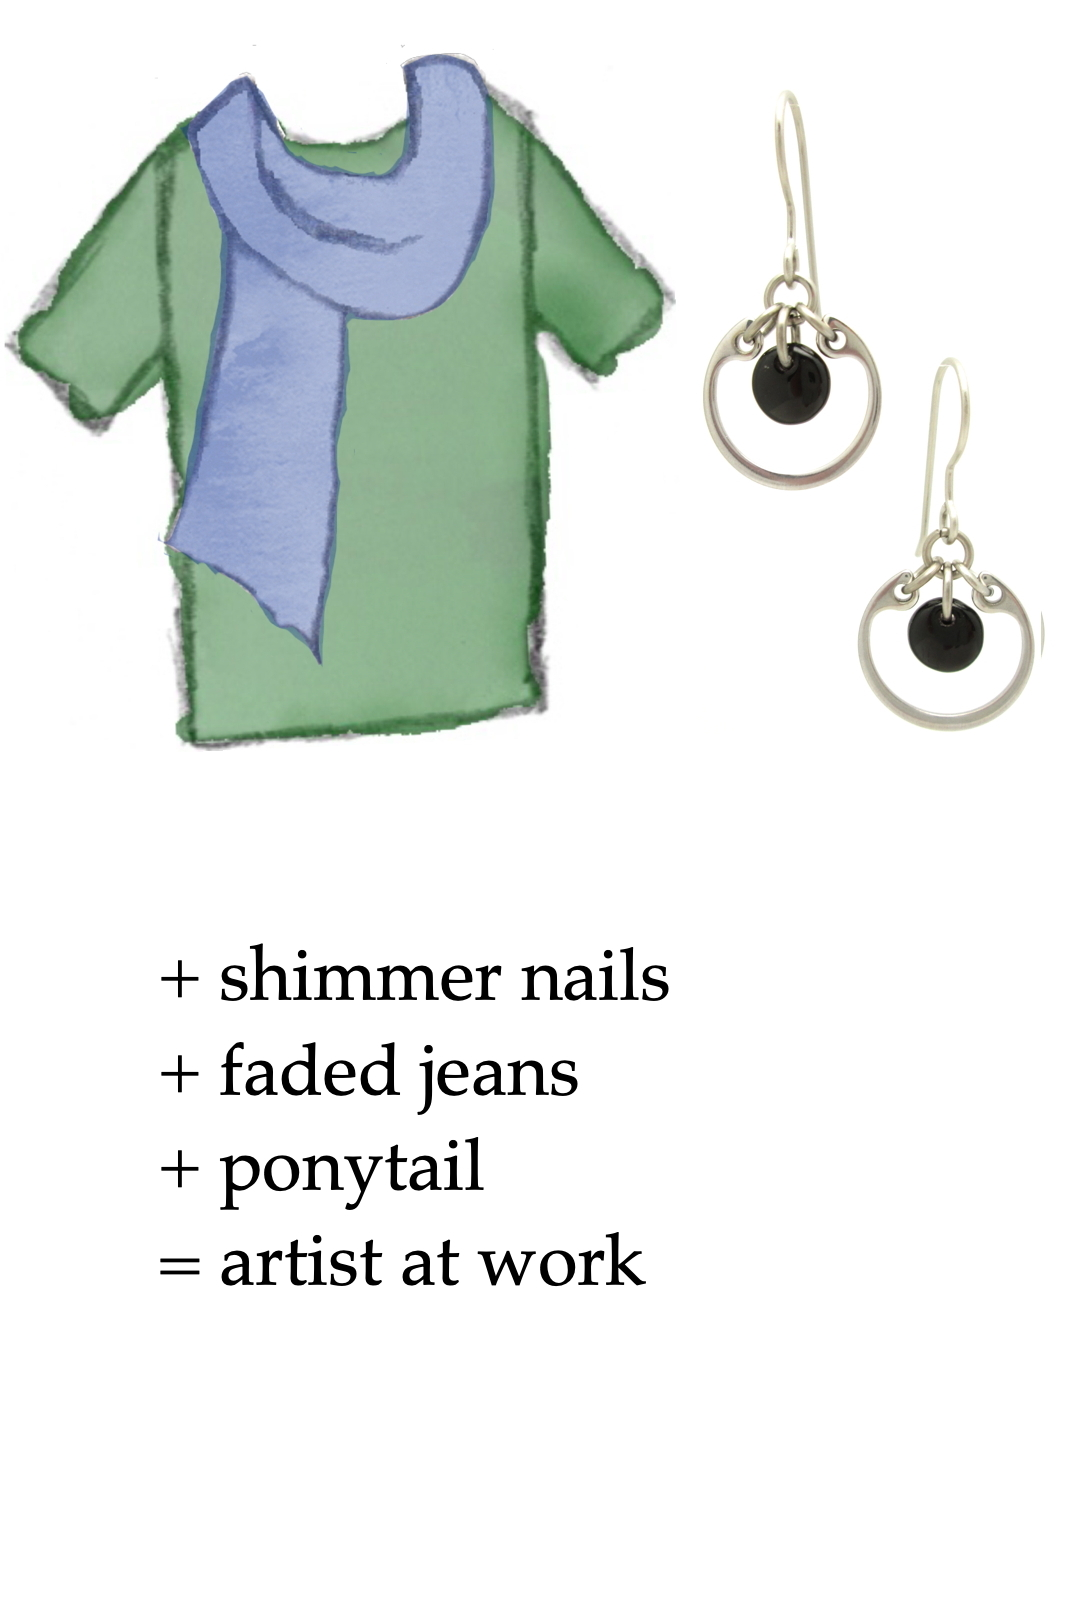 style sketch of a green tee + blue scarf with black modern circle earrings by wraptillion; text reads + shimmer nails + faded jeans + ponytail = artist at work